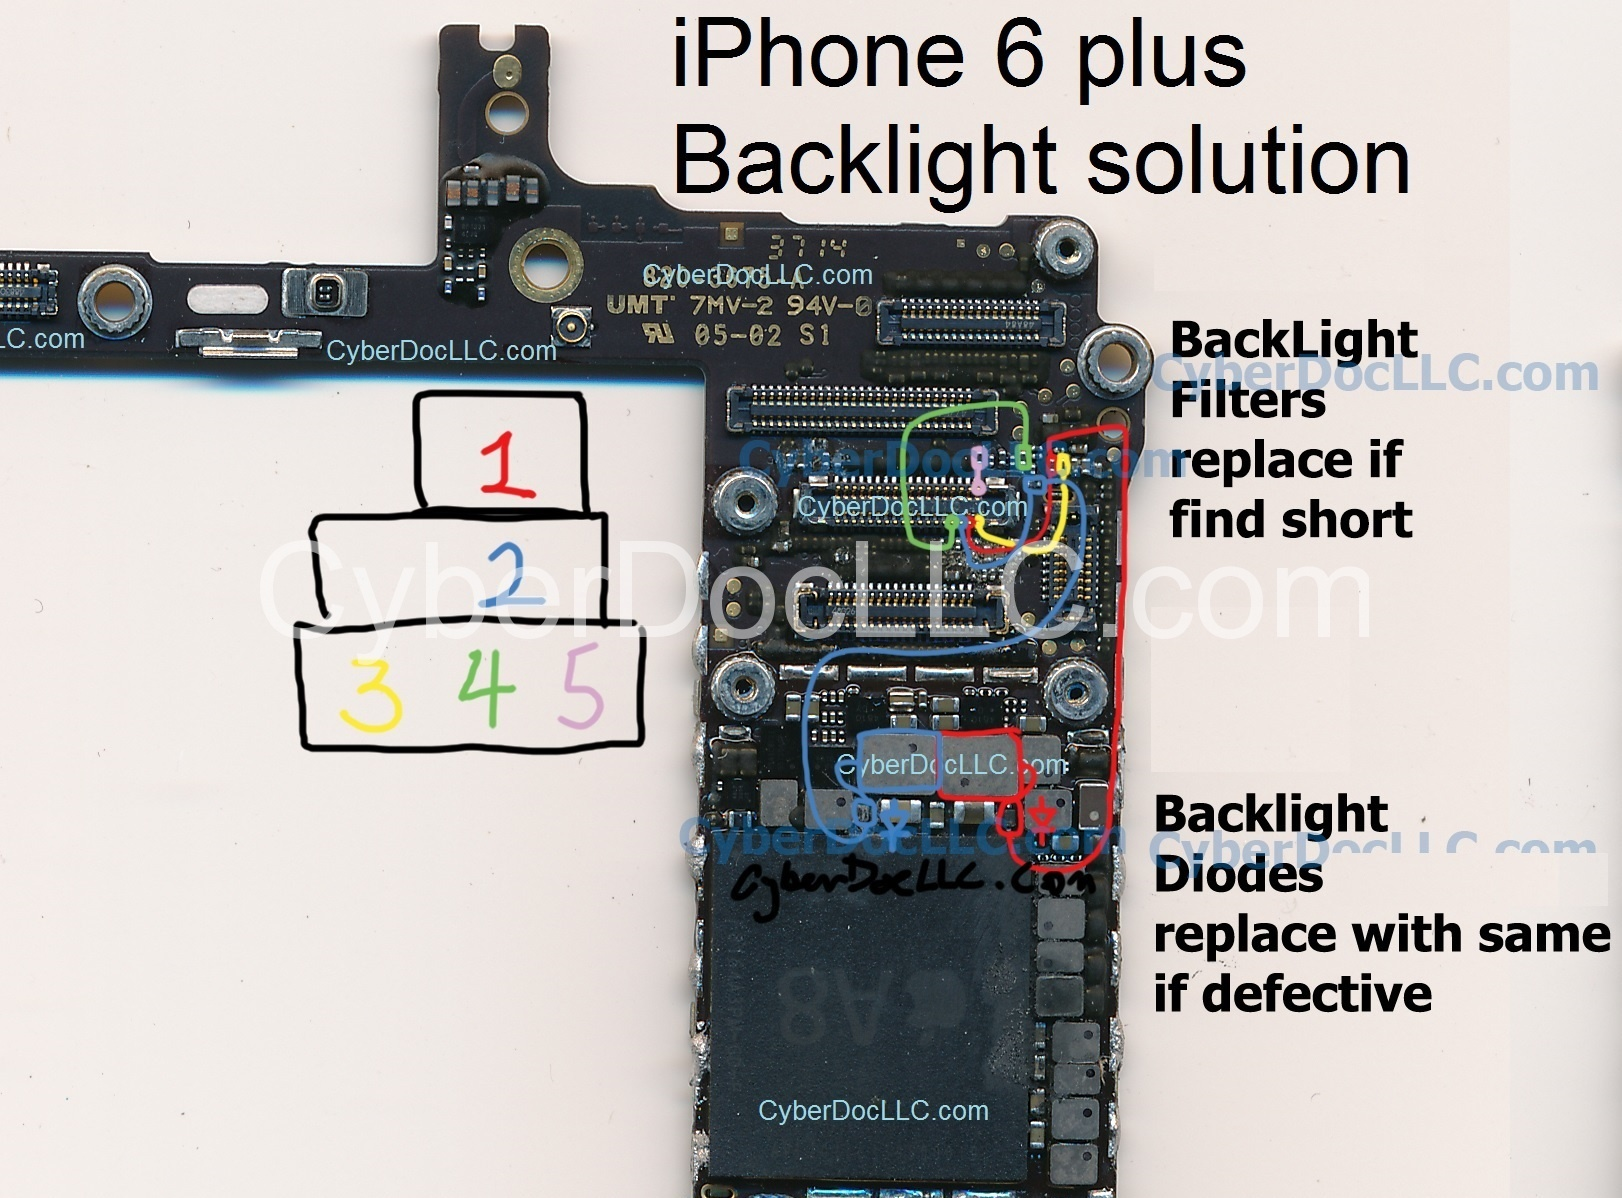 iPhone 6 Plus Backlight repair kit 2diode 6filters for dim screen and no  backlight | CyberDocLLC | iPhone and Apple Products Hardware Repair  Solutions